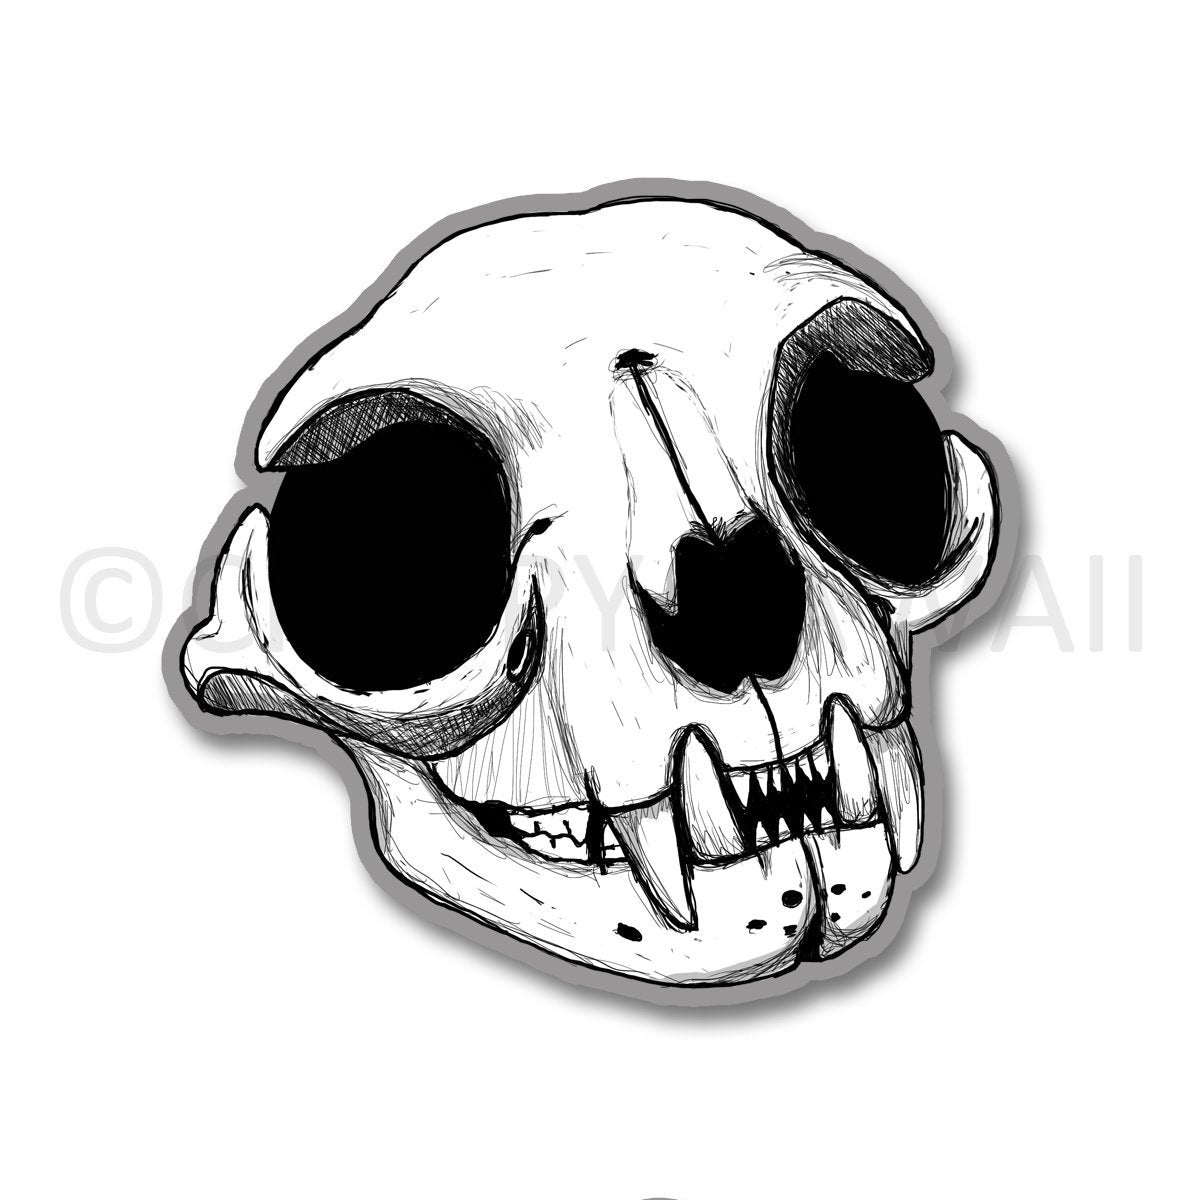 Cat Skull - 3 Inch Weatherproof Vinyl Sticker